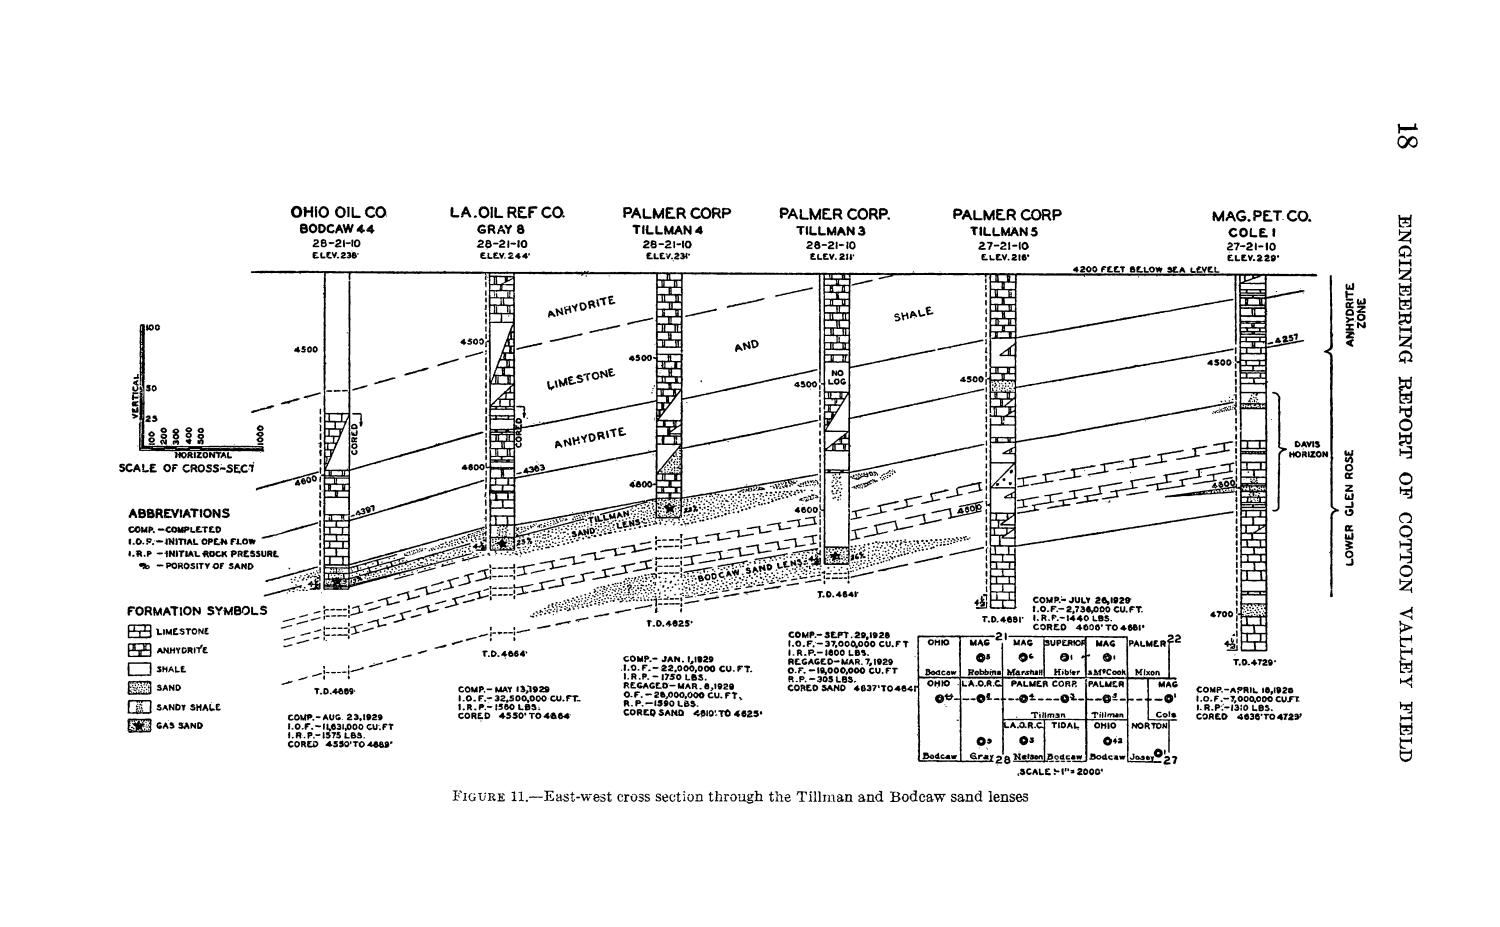 Engineering Report Of Cotton Valley Field Webster Parish Louisiana